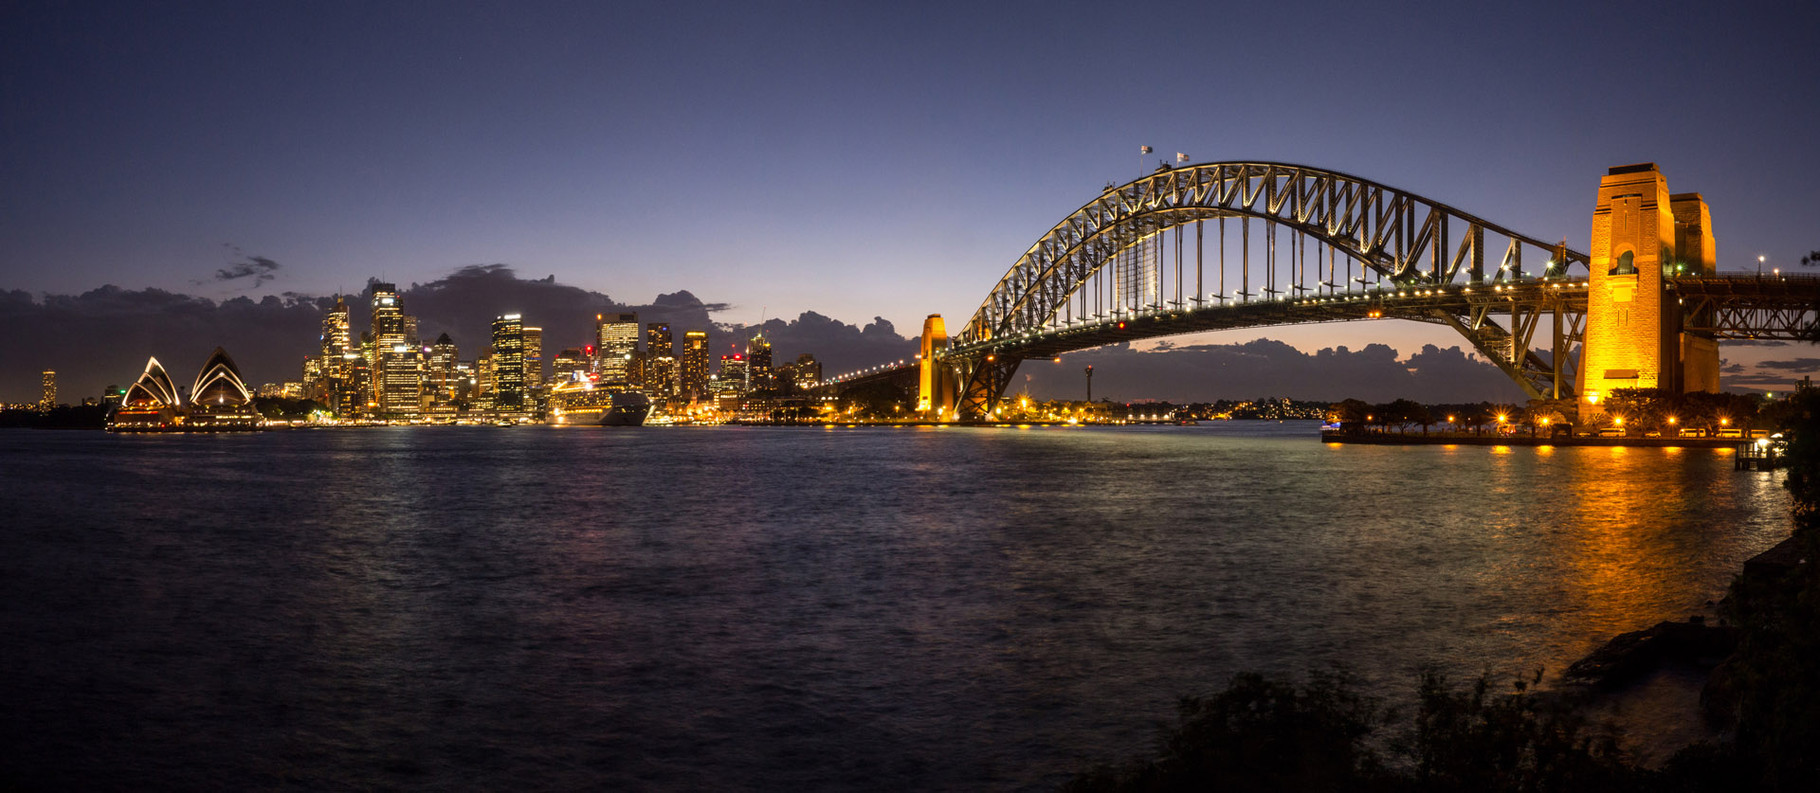 Panorama of Harbour bridge at dusk, Sydney